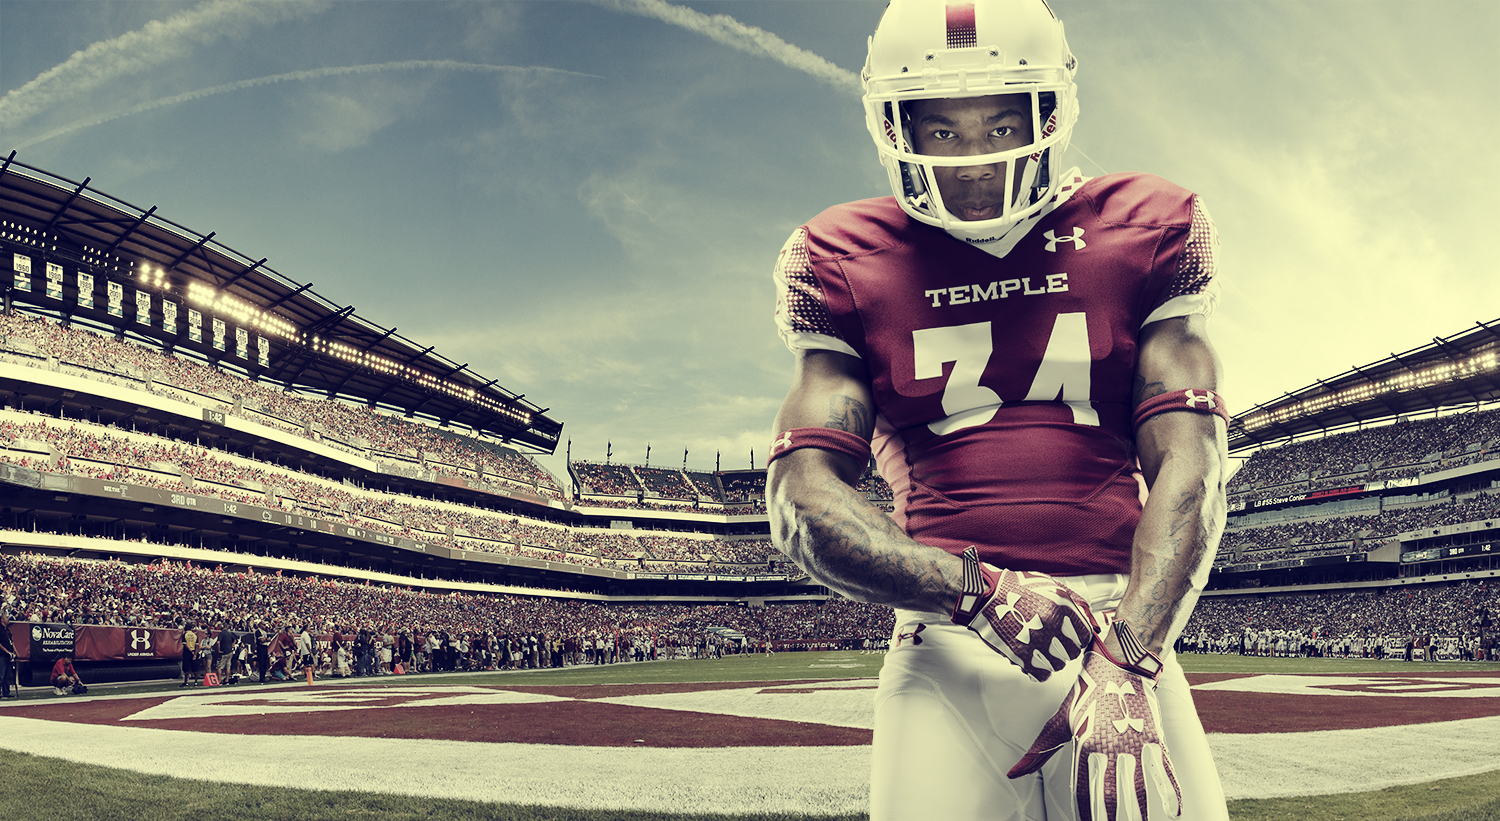 TEMPLE_NEW UNIS_34.jpg